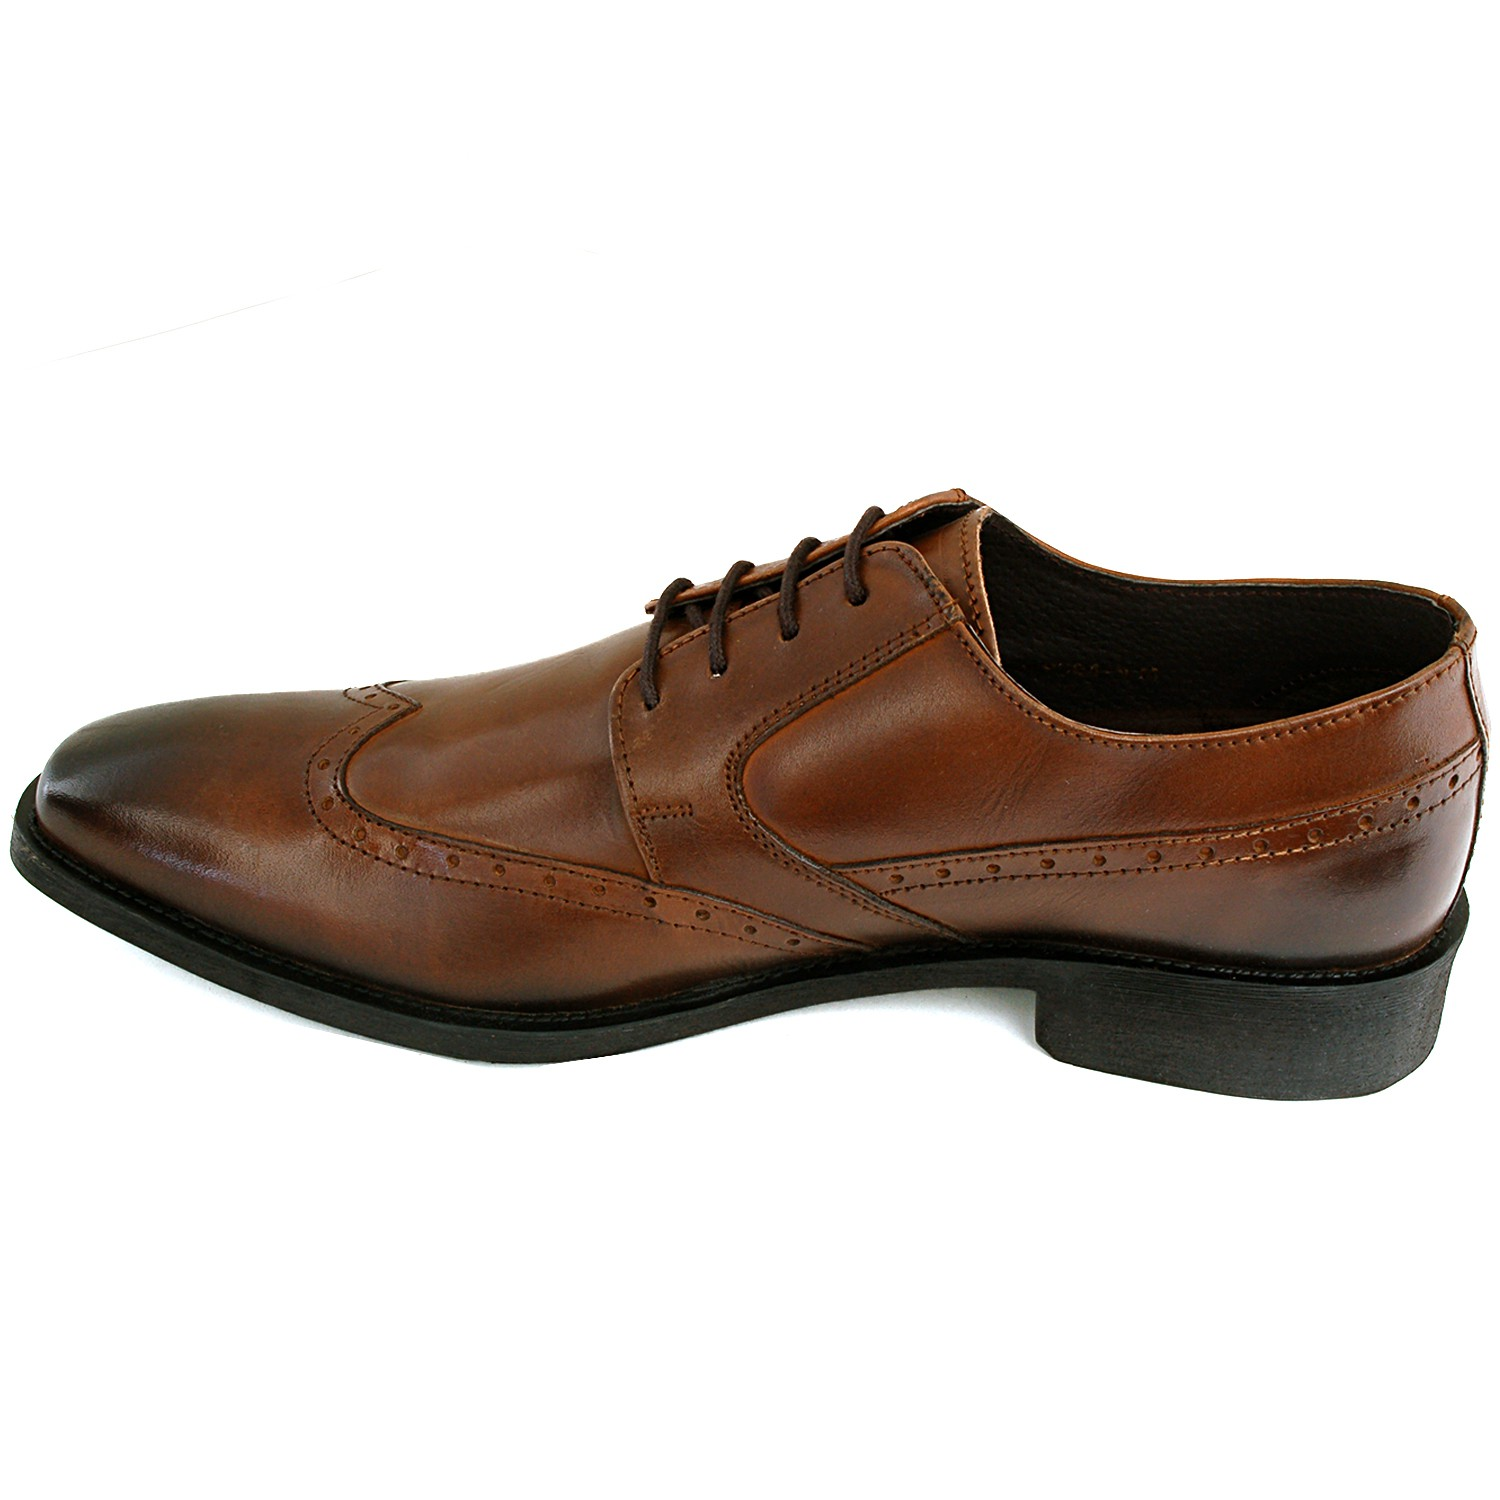 Top Rated Dress Shoes For Comfort